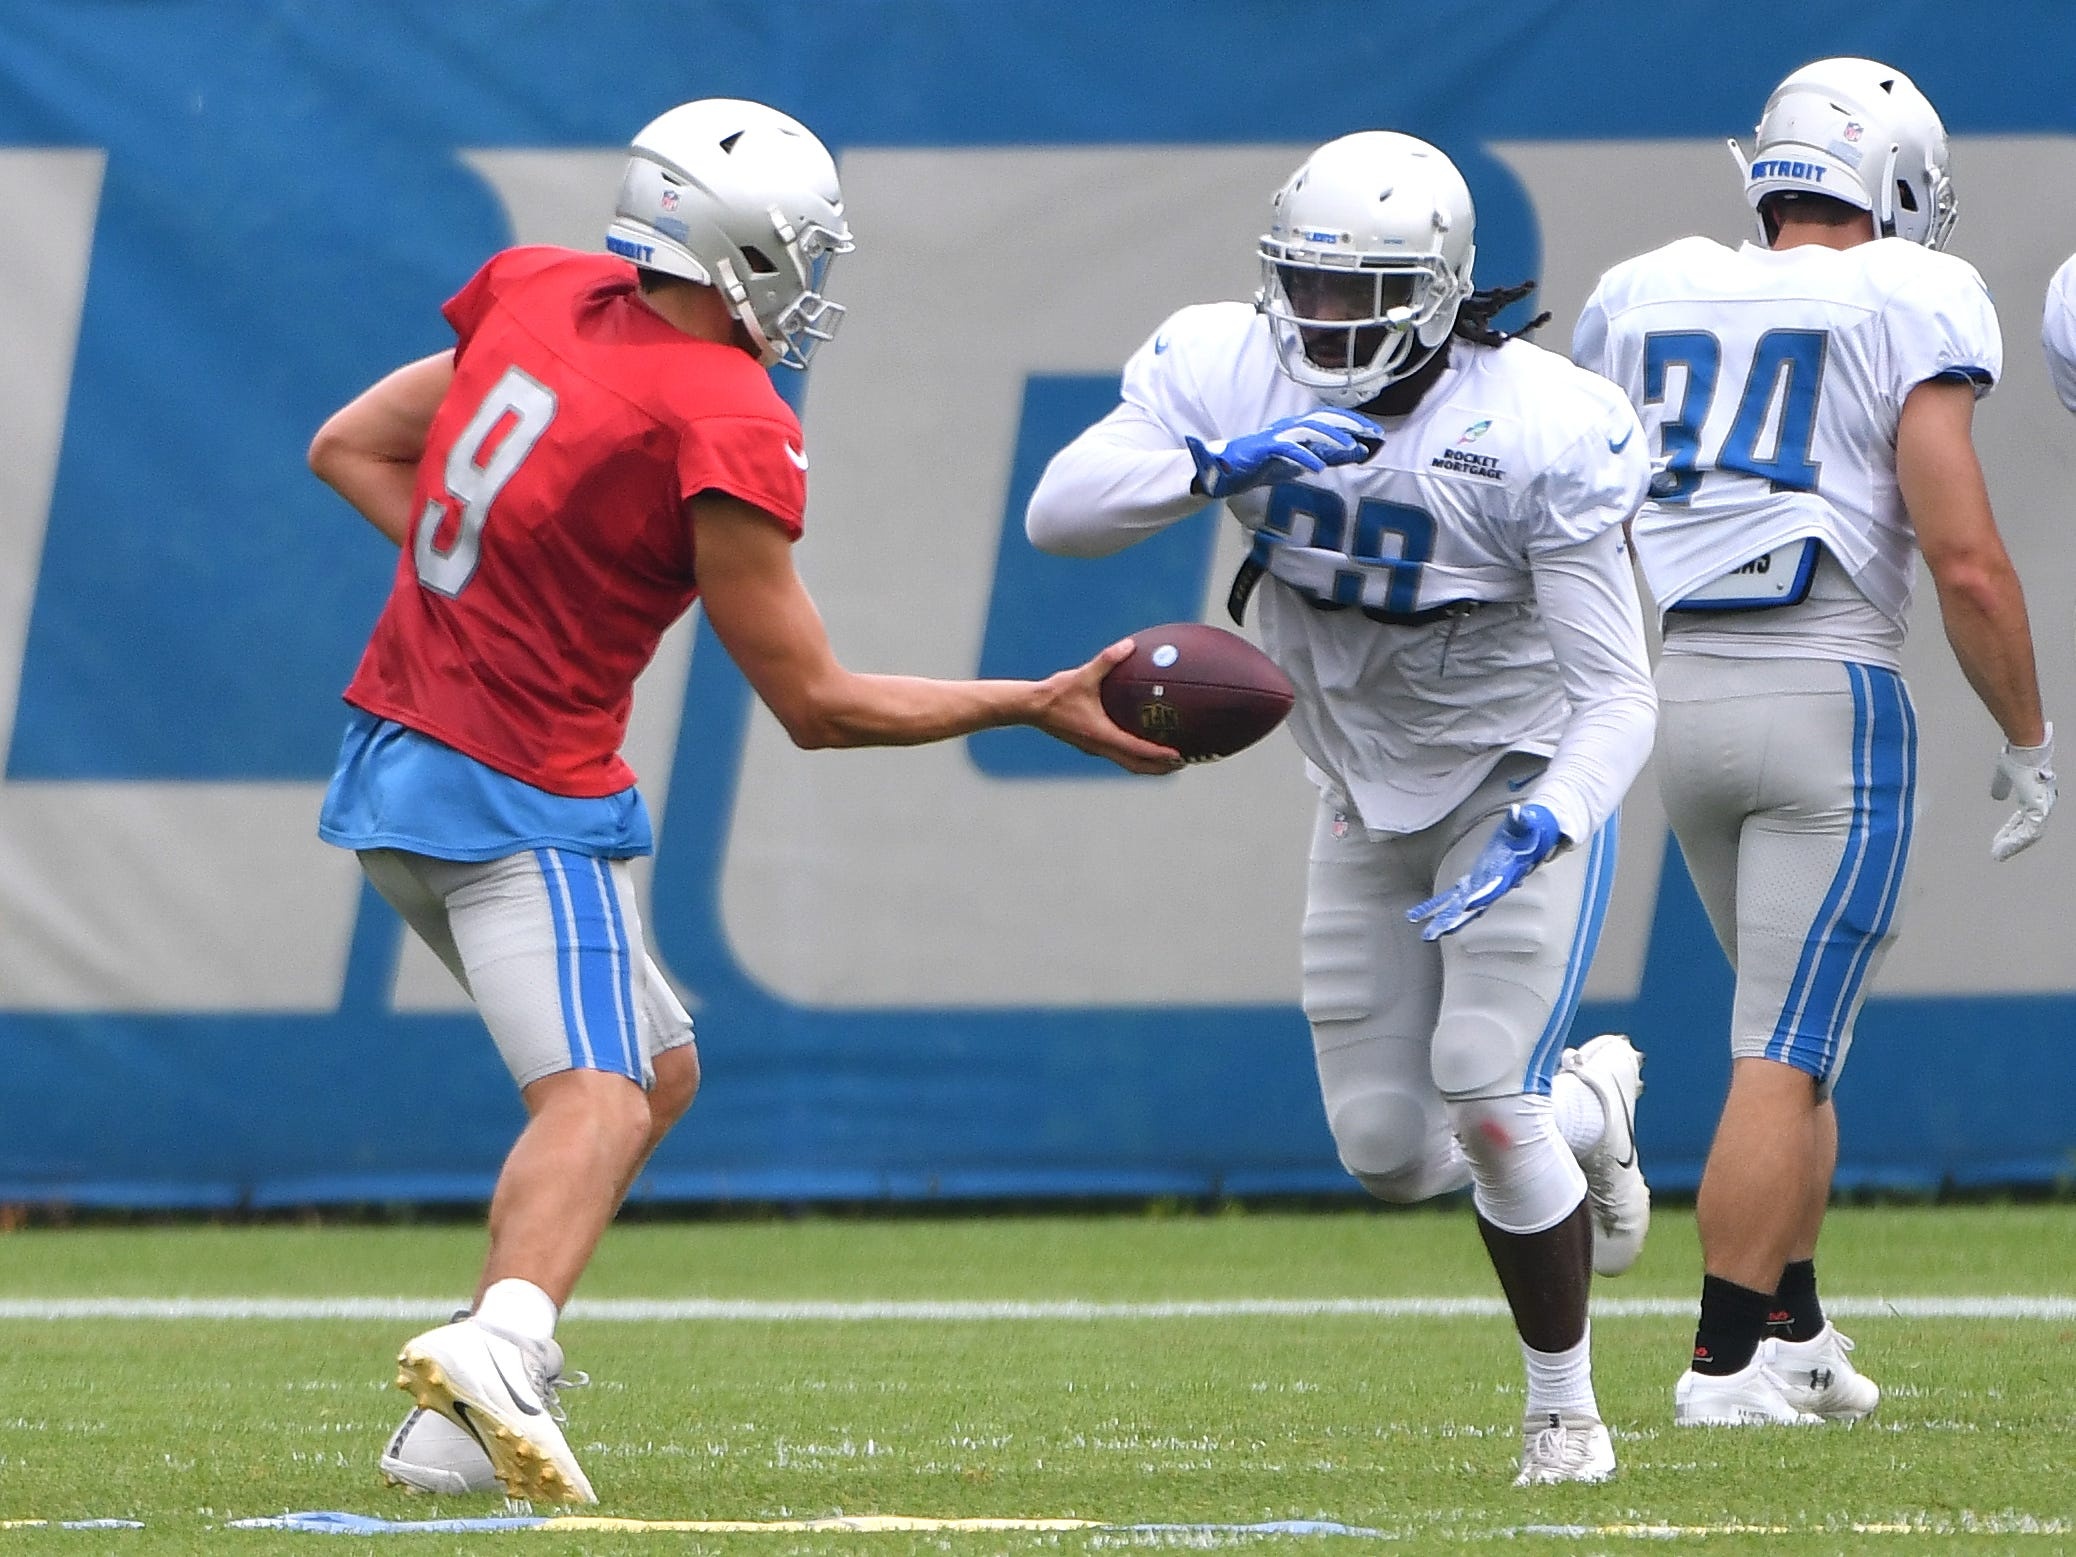 Lions quarterback Matthew Stafford hands off to running back LeGarrette Blount.